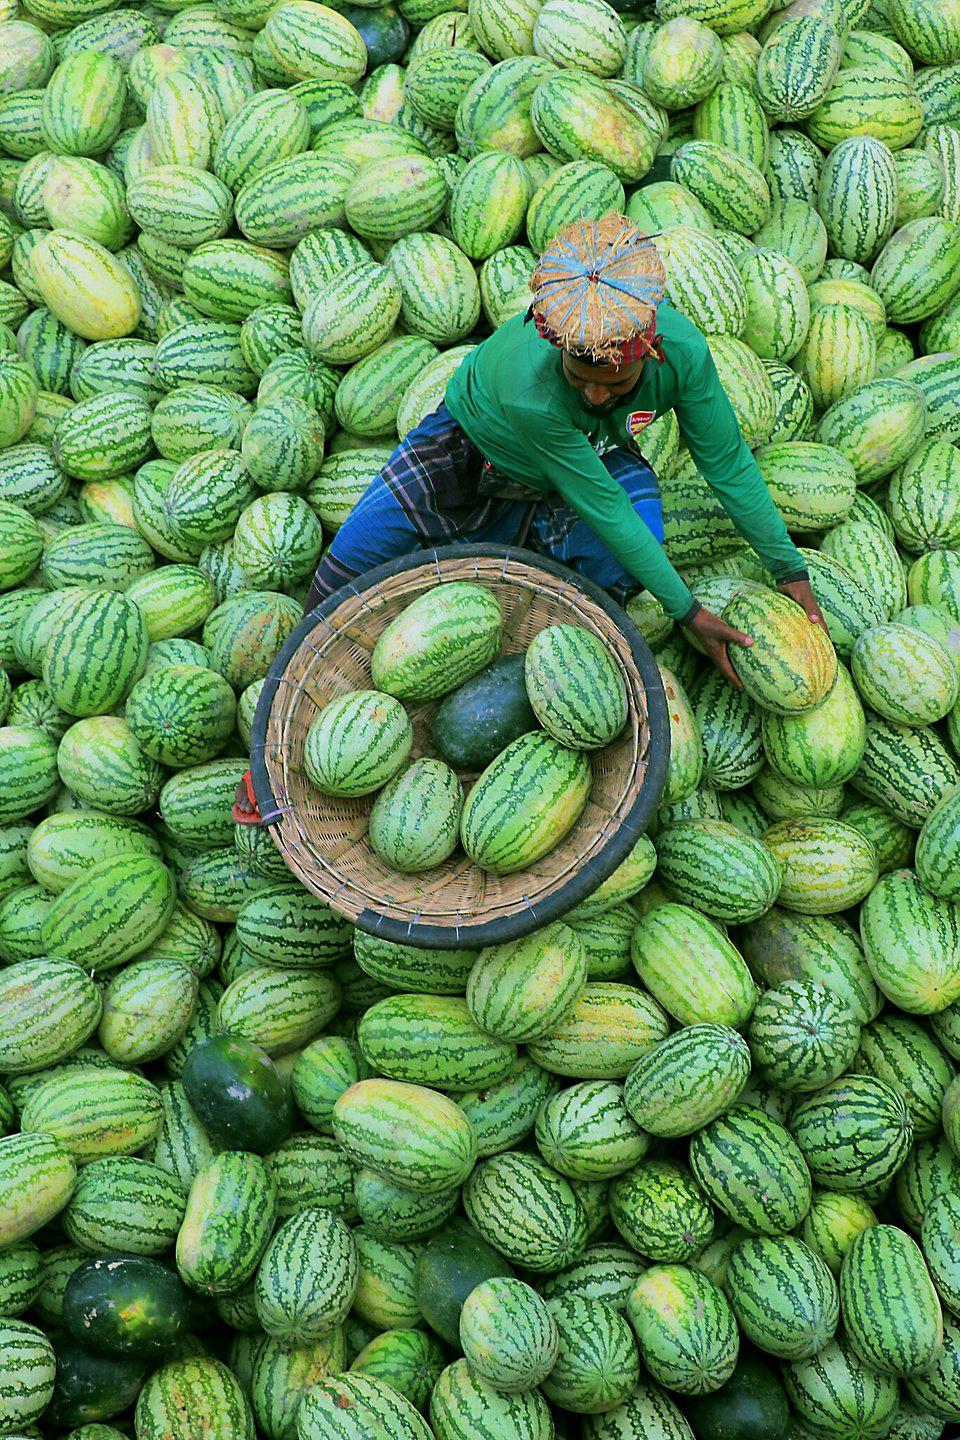 vendor surrounded by watermelons